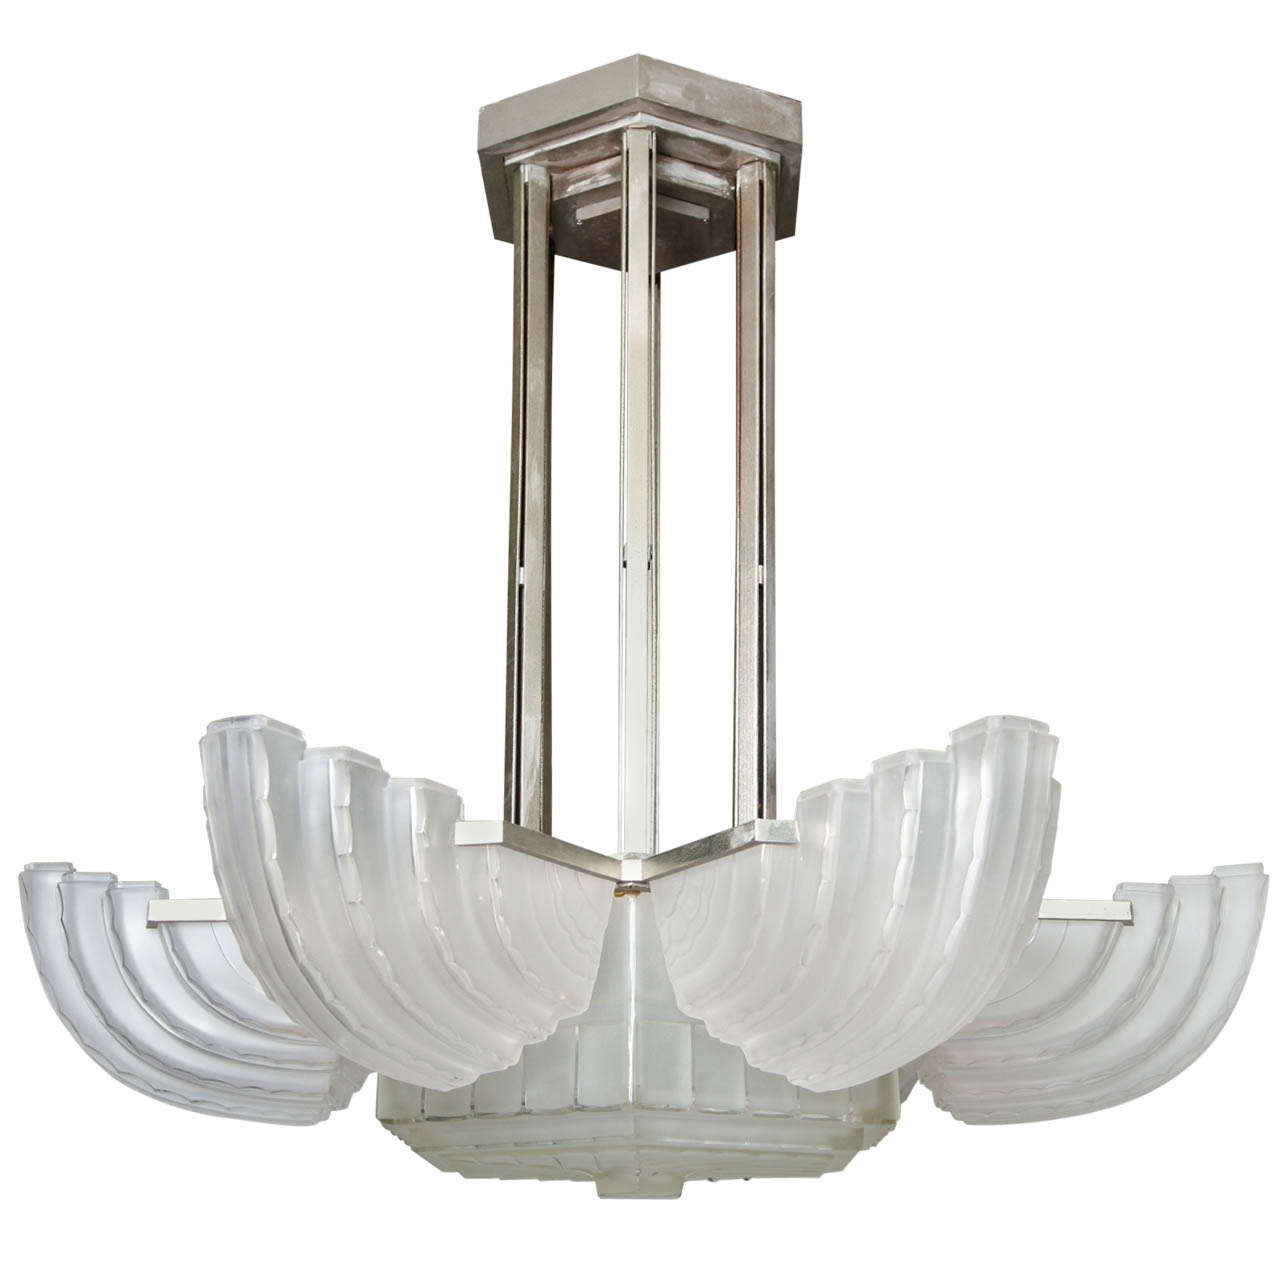 2017 Large And Important Art Deco Chandeliersabino – Paul Stamati Gallery Inside Large Art Deco Chandelier (View 4 of 15)